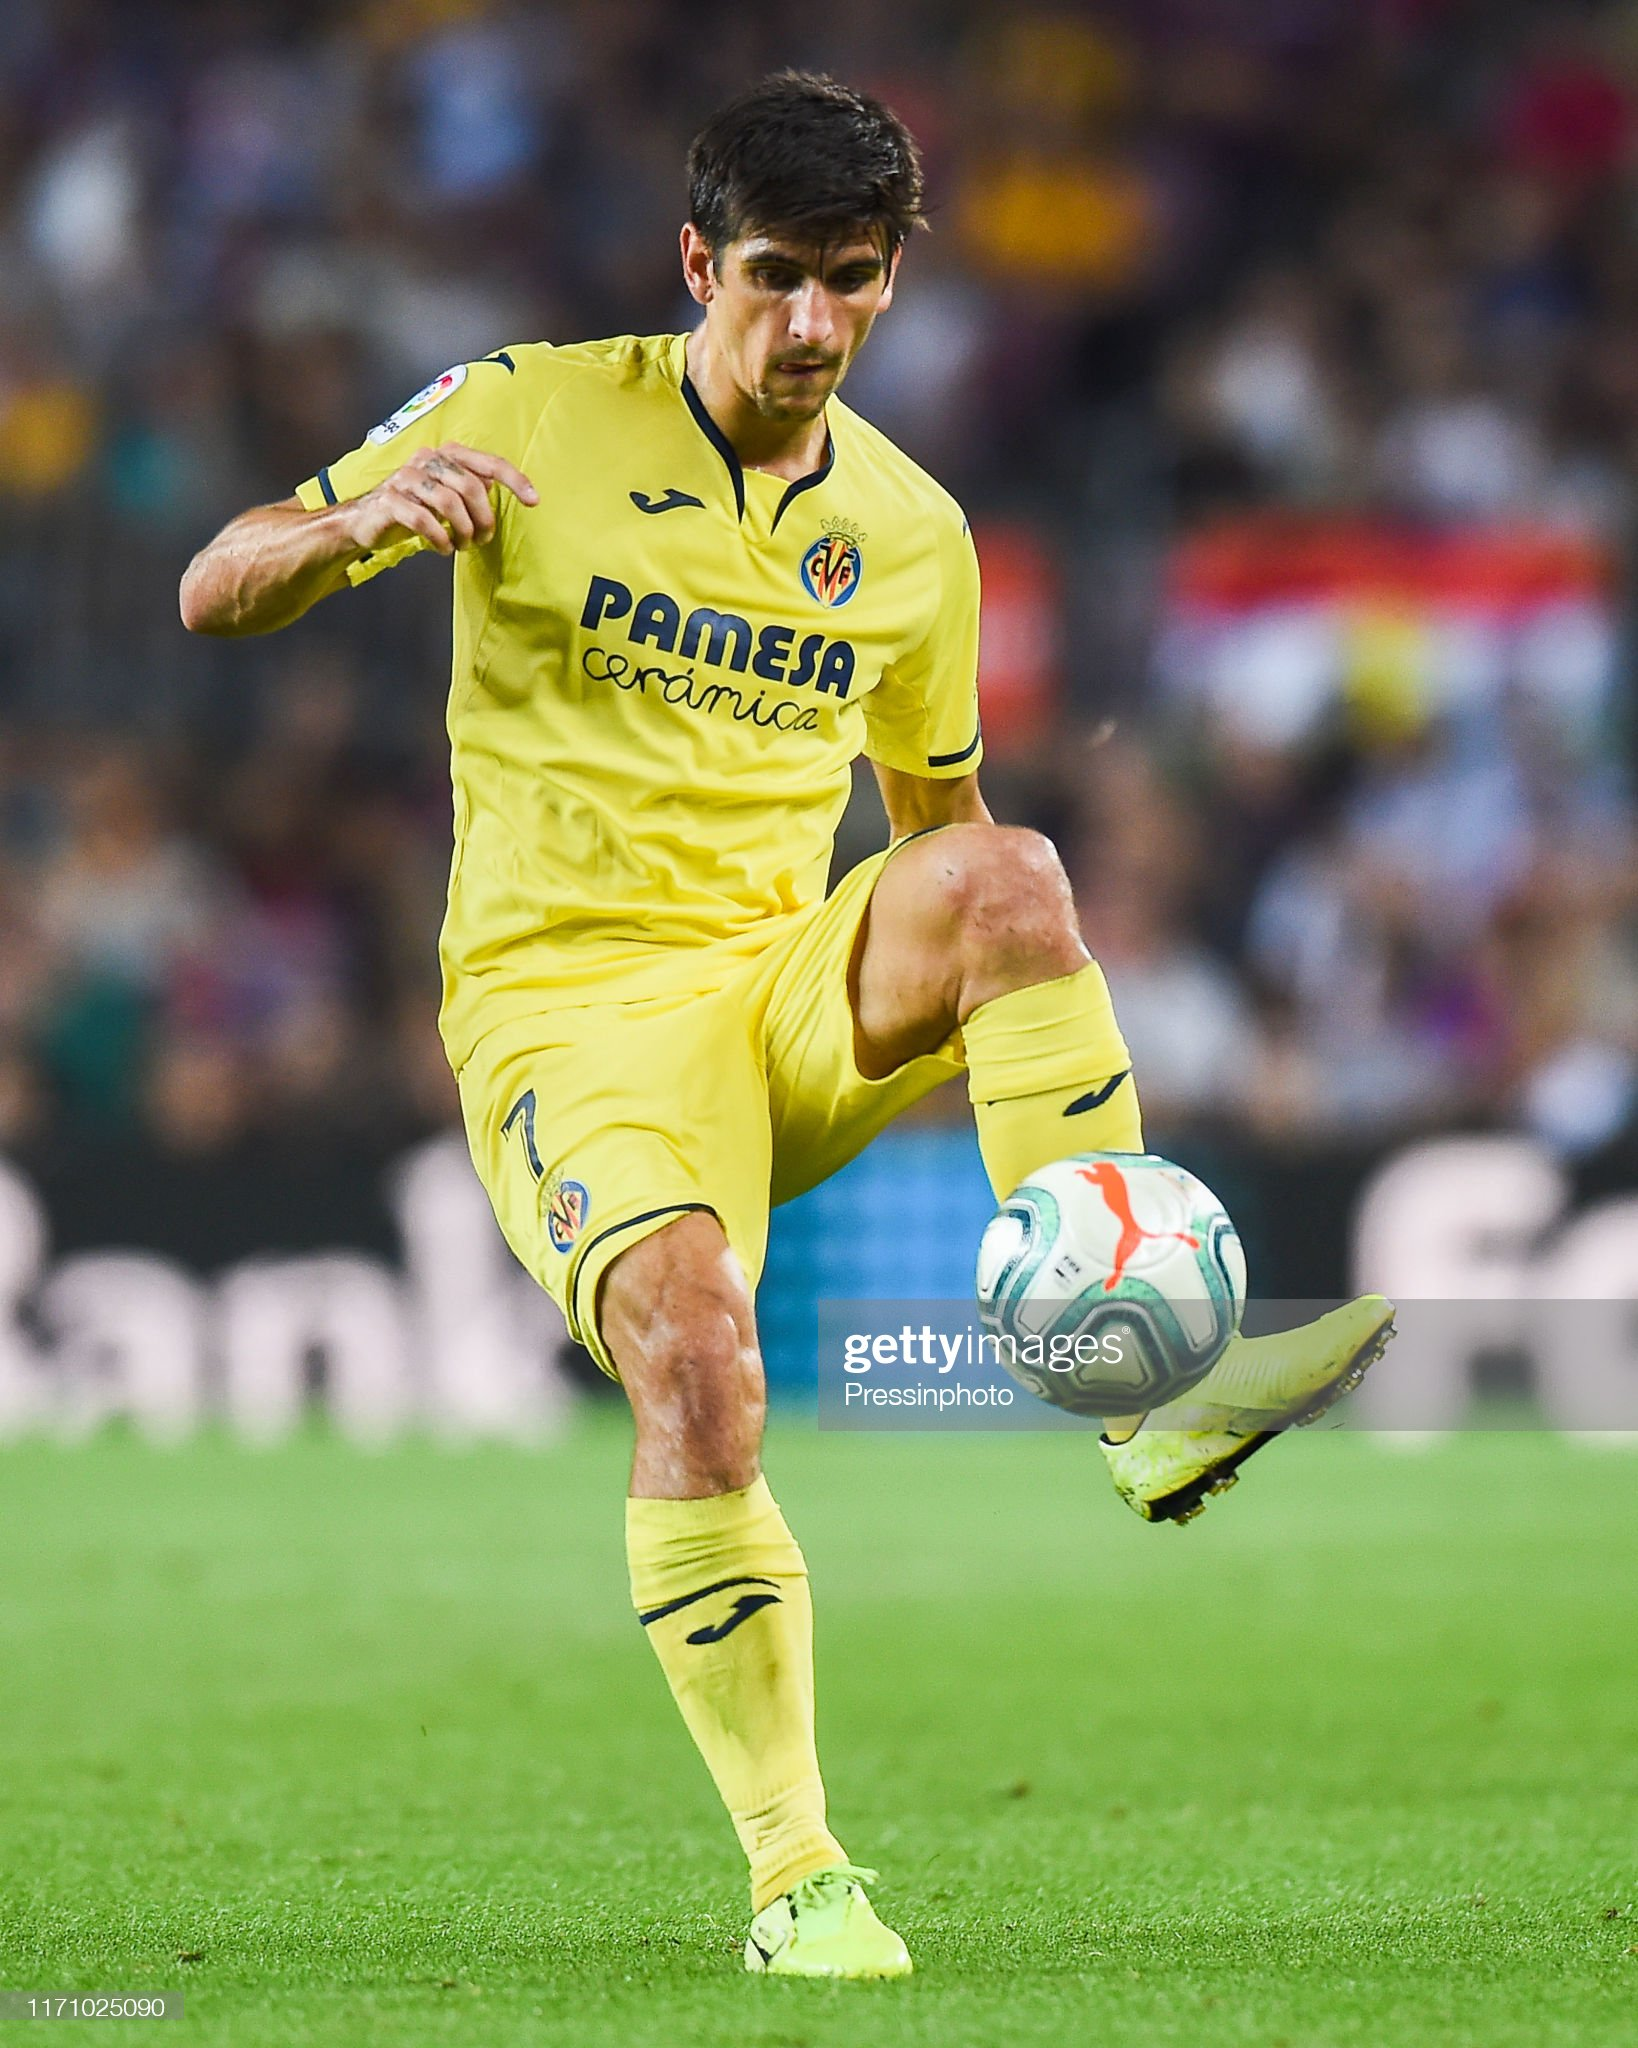 ¿Cuánto mide Gerard Moreno? - Altura Gerard-moreno-of-villarreal-cf-during-the-liga-match-between-and-on-picture-id1171025090?s=2048x2048